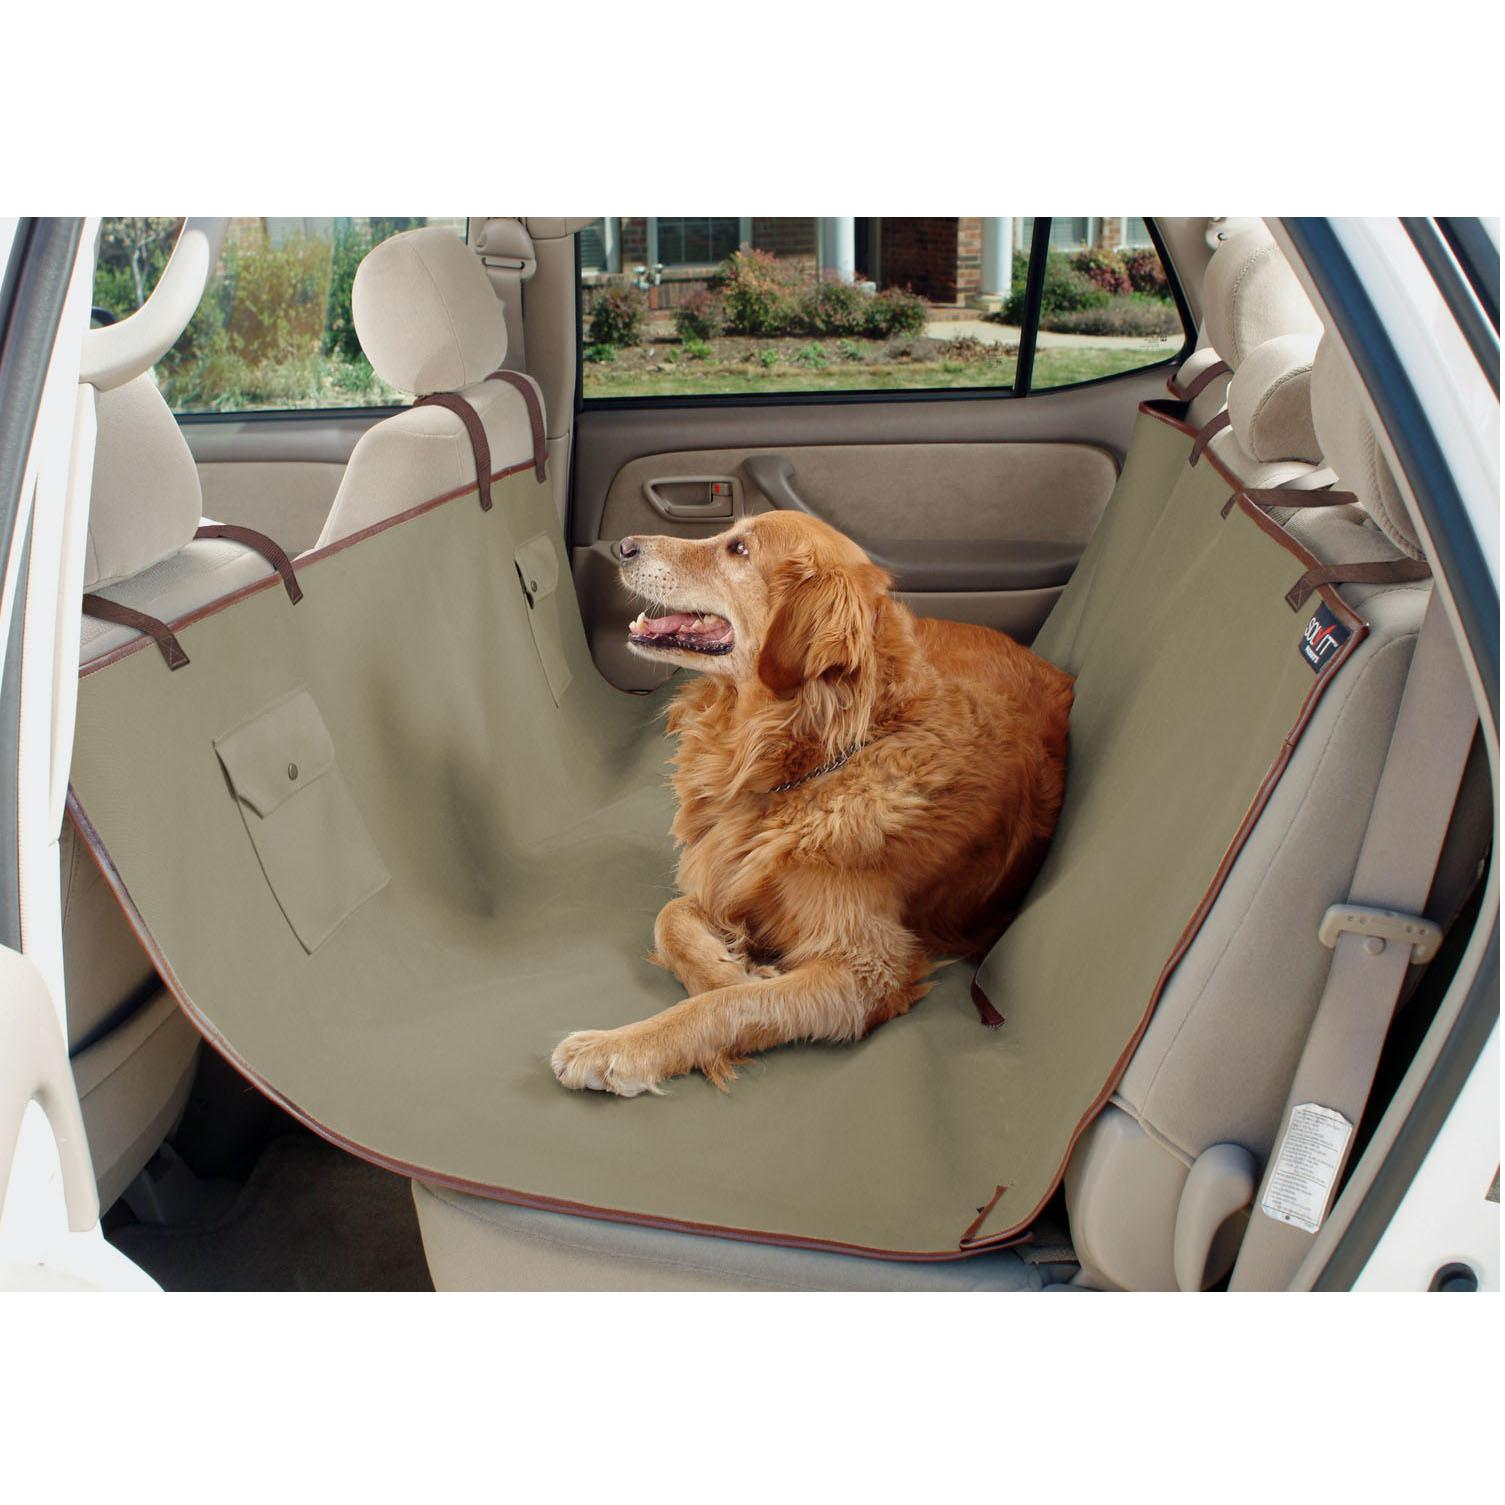 Waterproof Hammock Dog Car Seat Cover - Beige